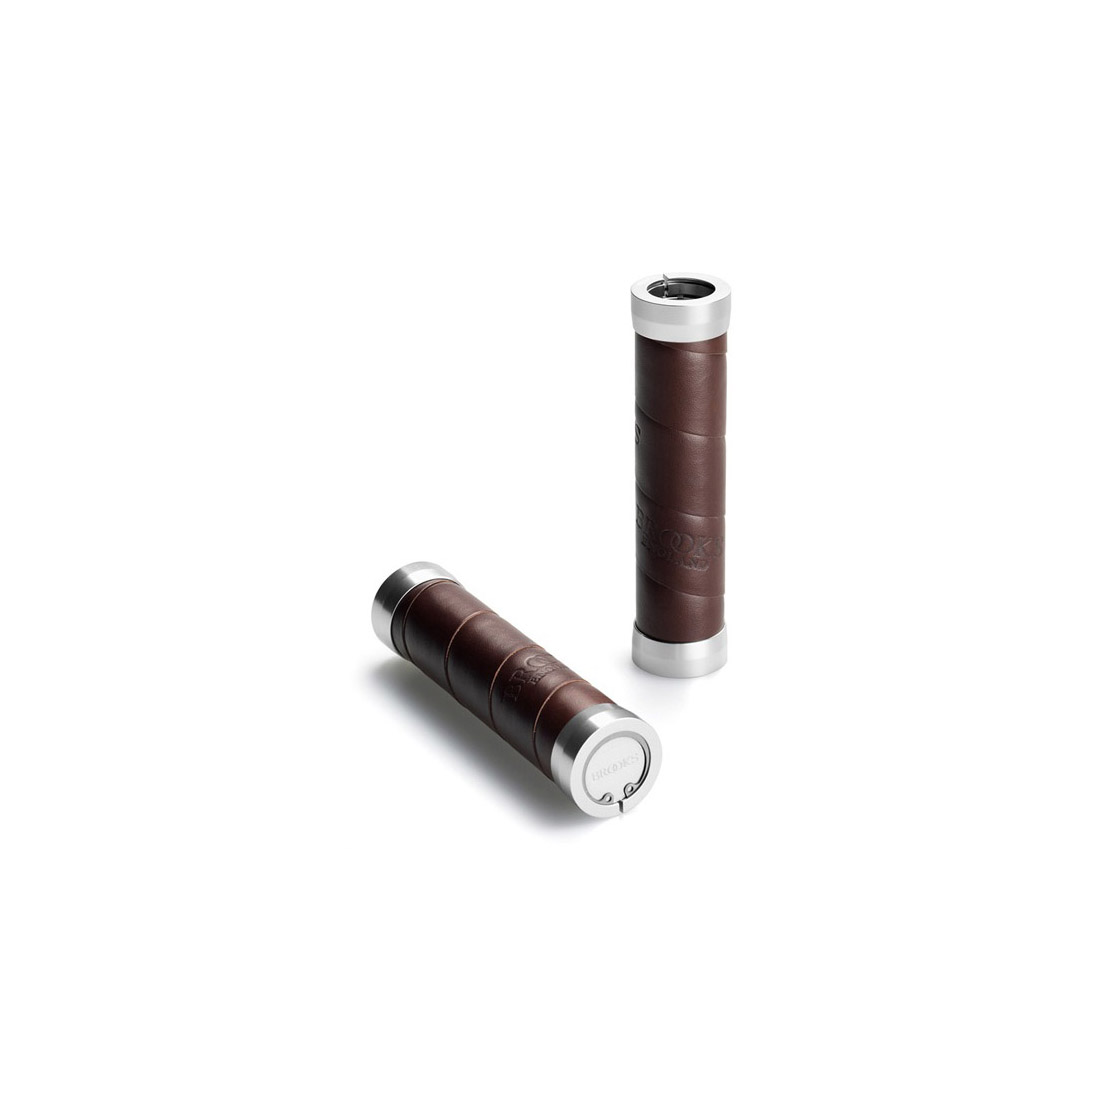 把手 Grips leather grips slender 130 130 brown w800 h600 vamiddle jc95